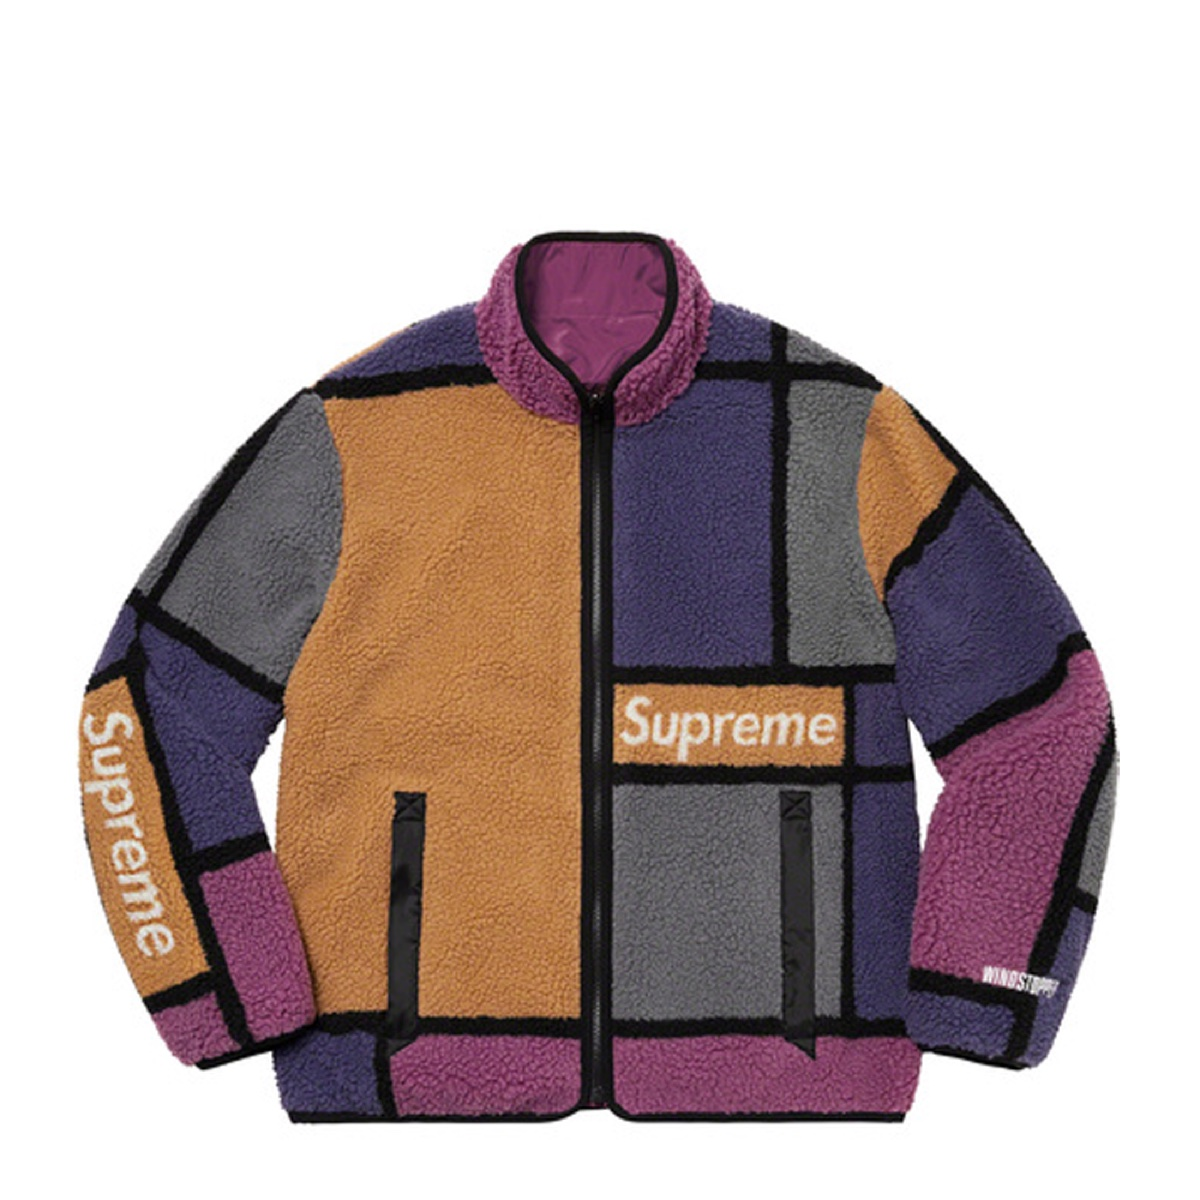 Supreme Reversible Colorblocked Fleece Jacket Purple